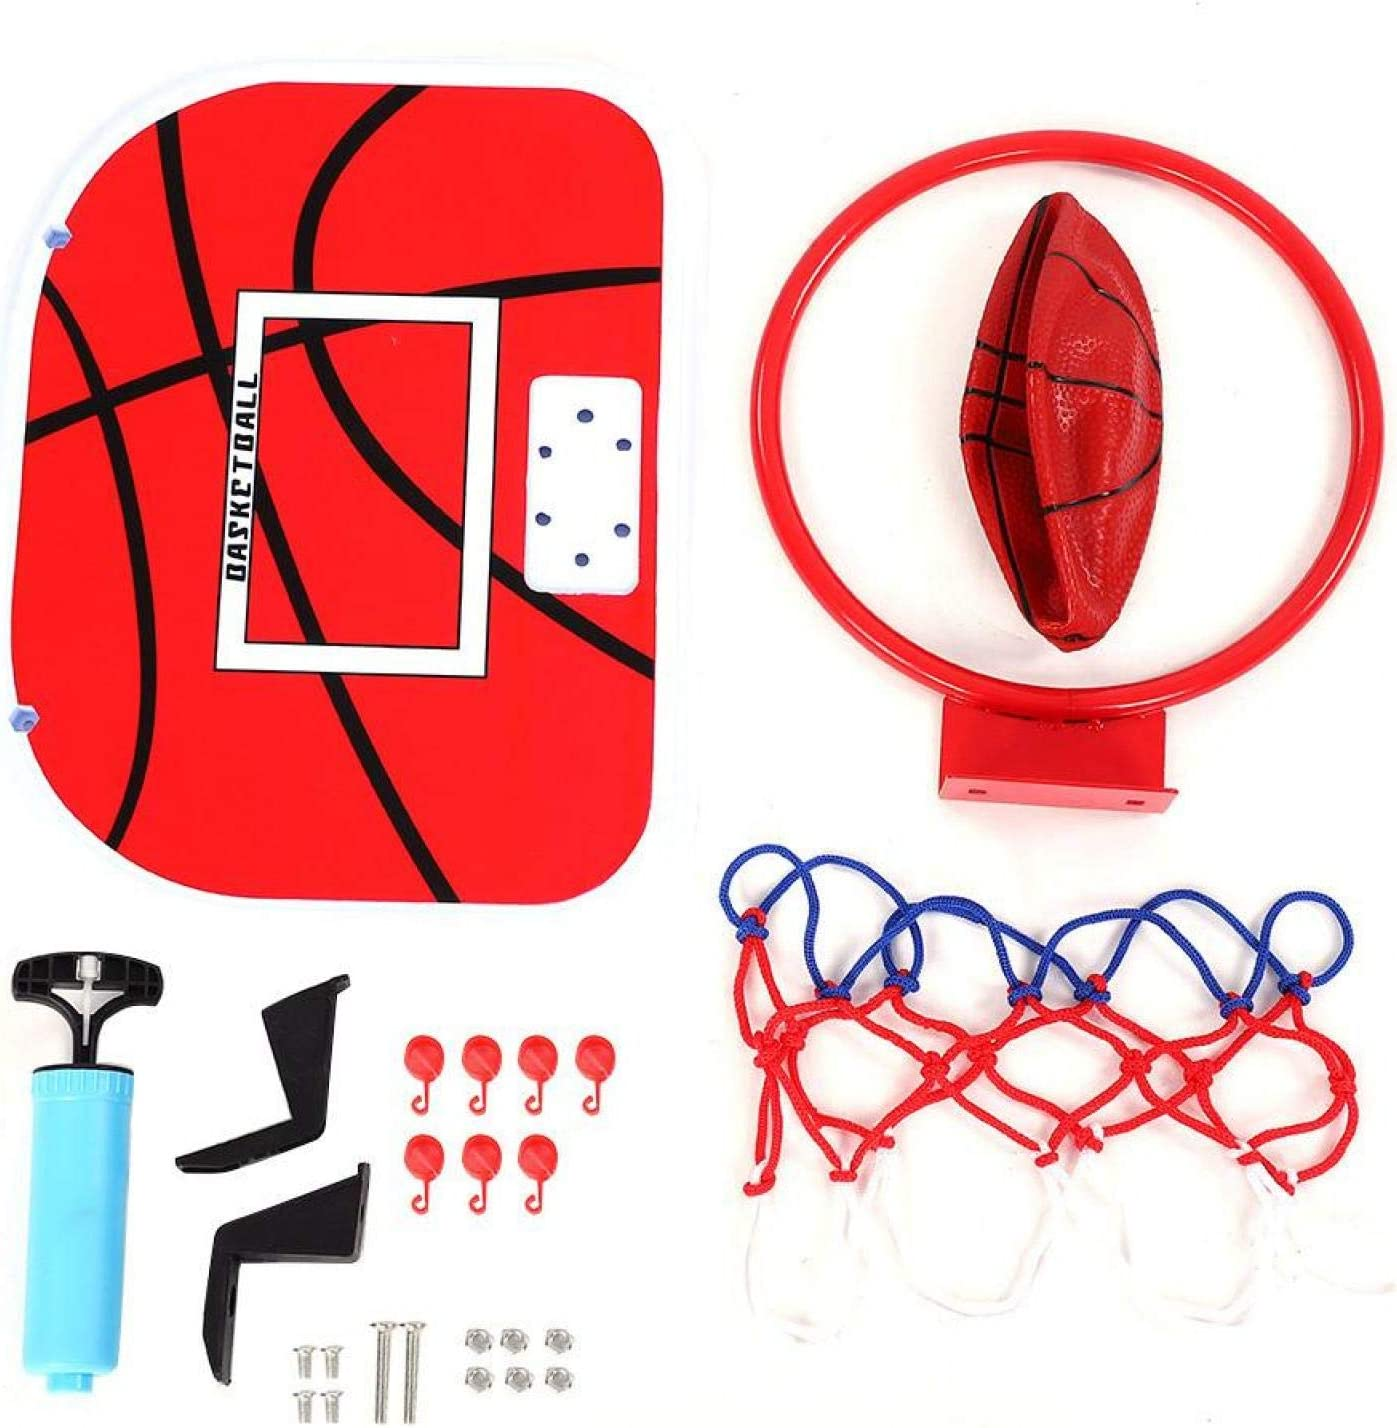 Jazar with Pump Basketball Set Ch Metal Durable Toy Challenge the lowest Beauty products price of Japan